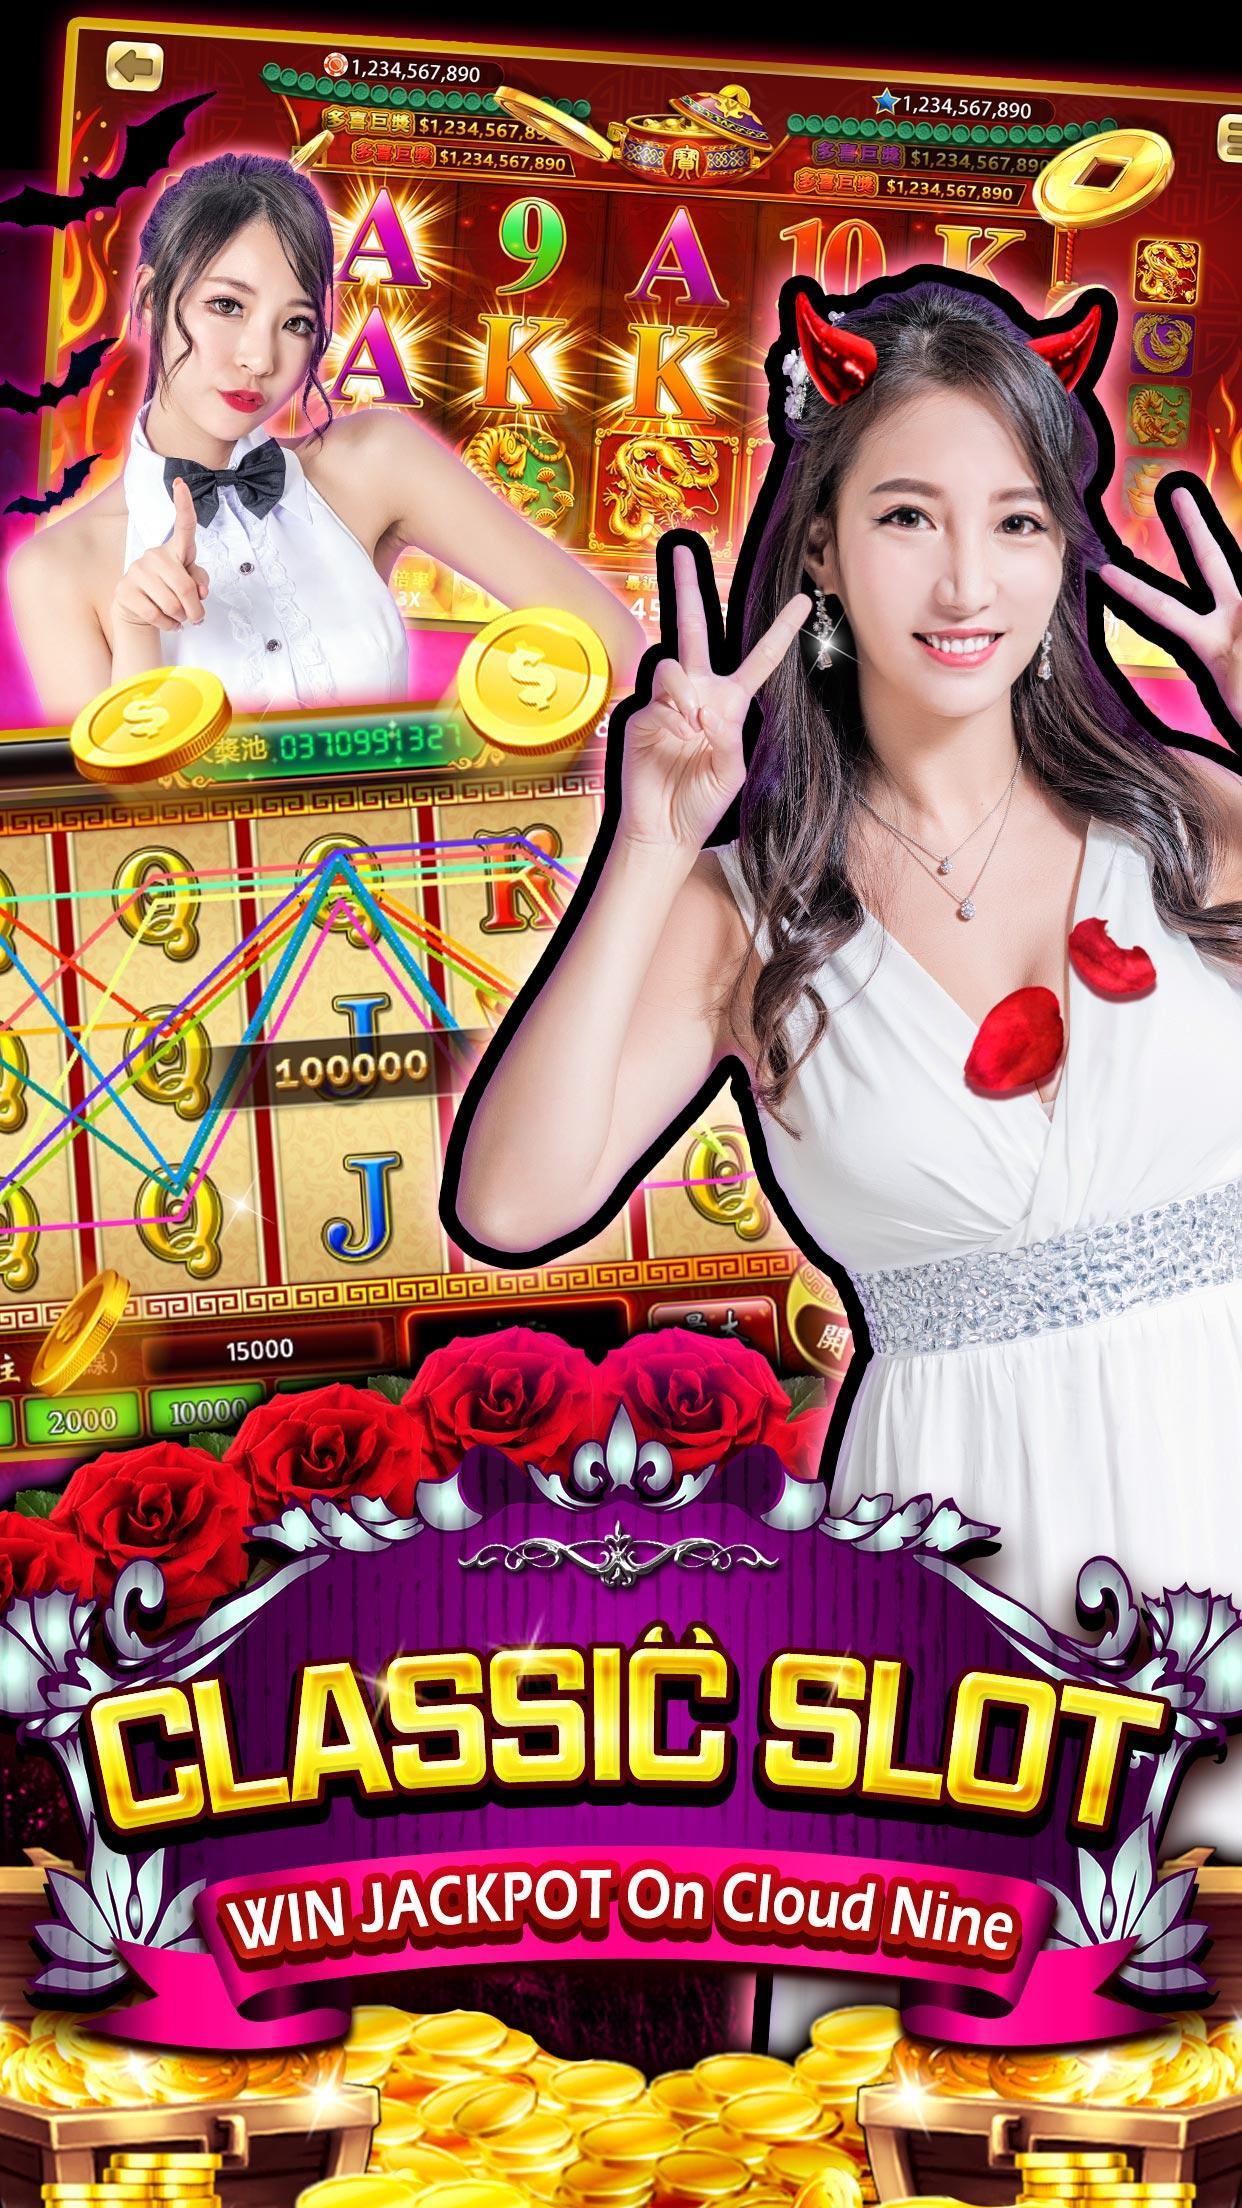 Casino M Anniversary Benz Slot Poker Baccarat For Android Apk Download